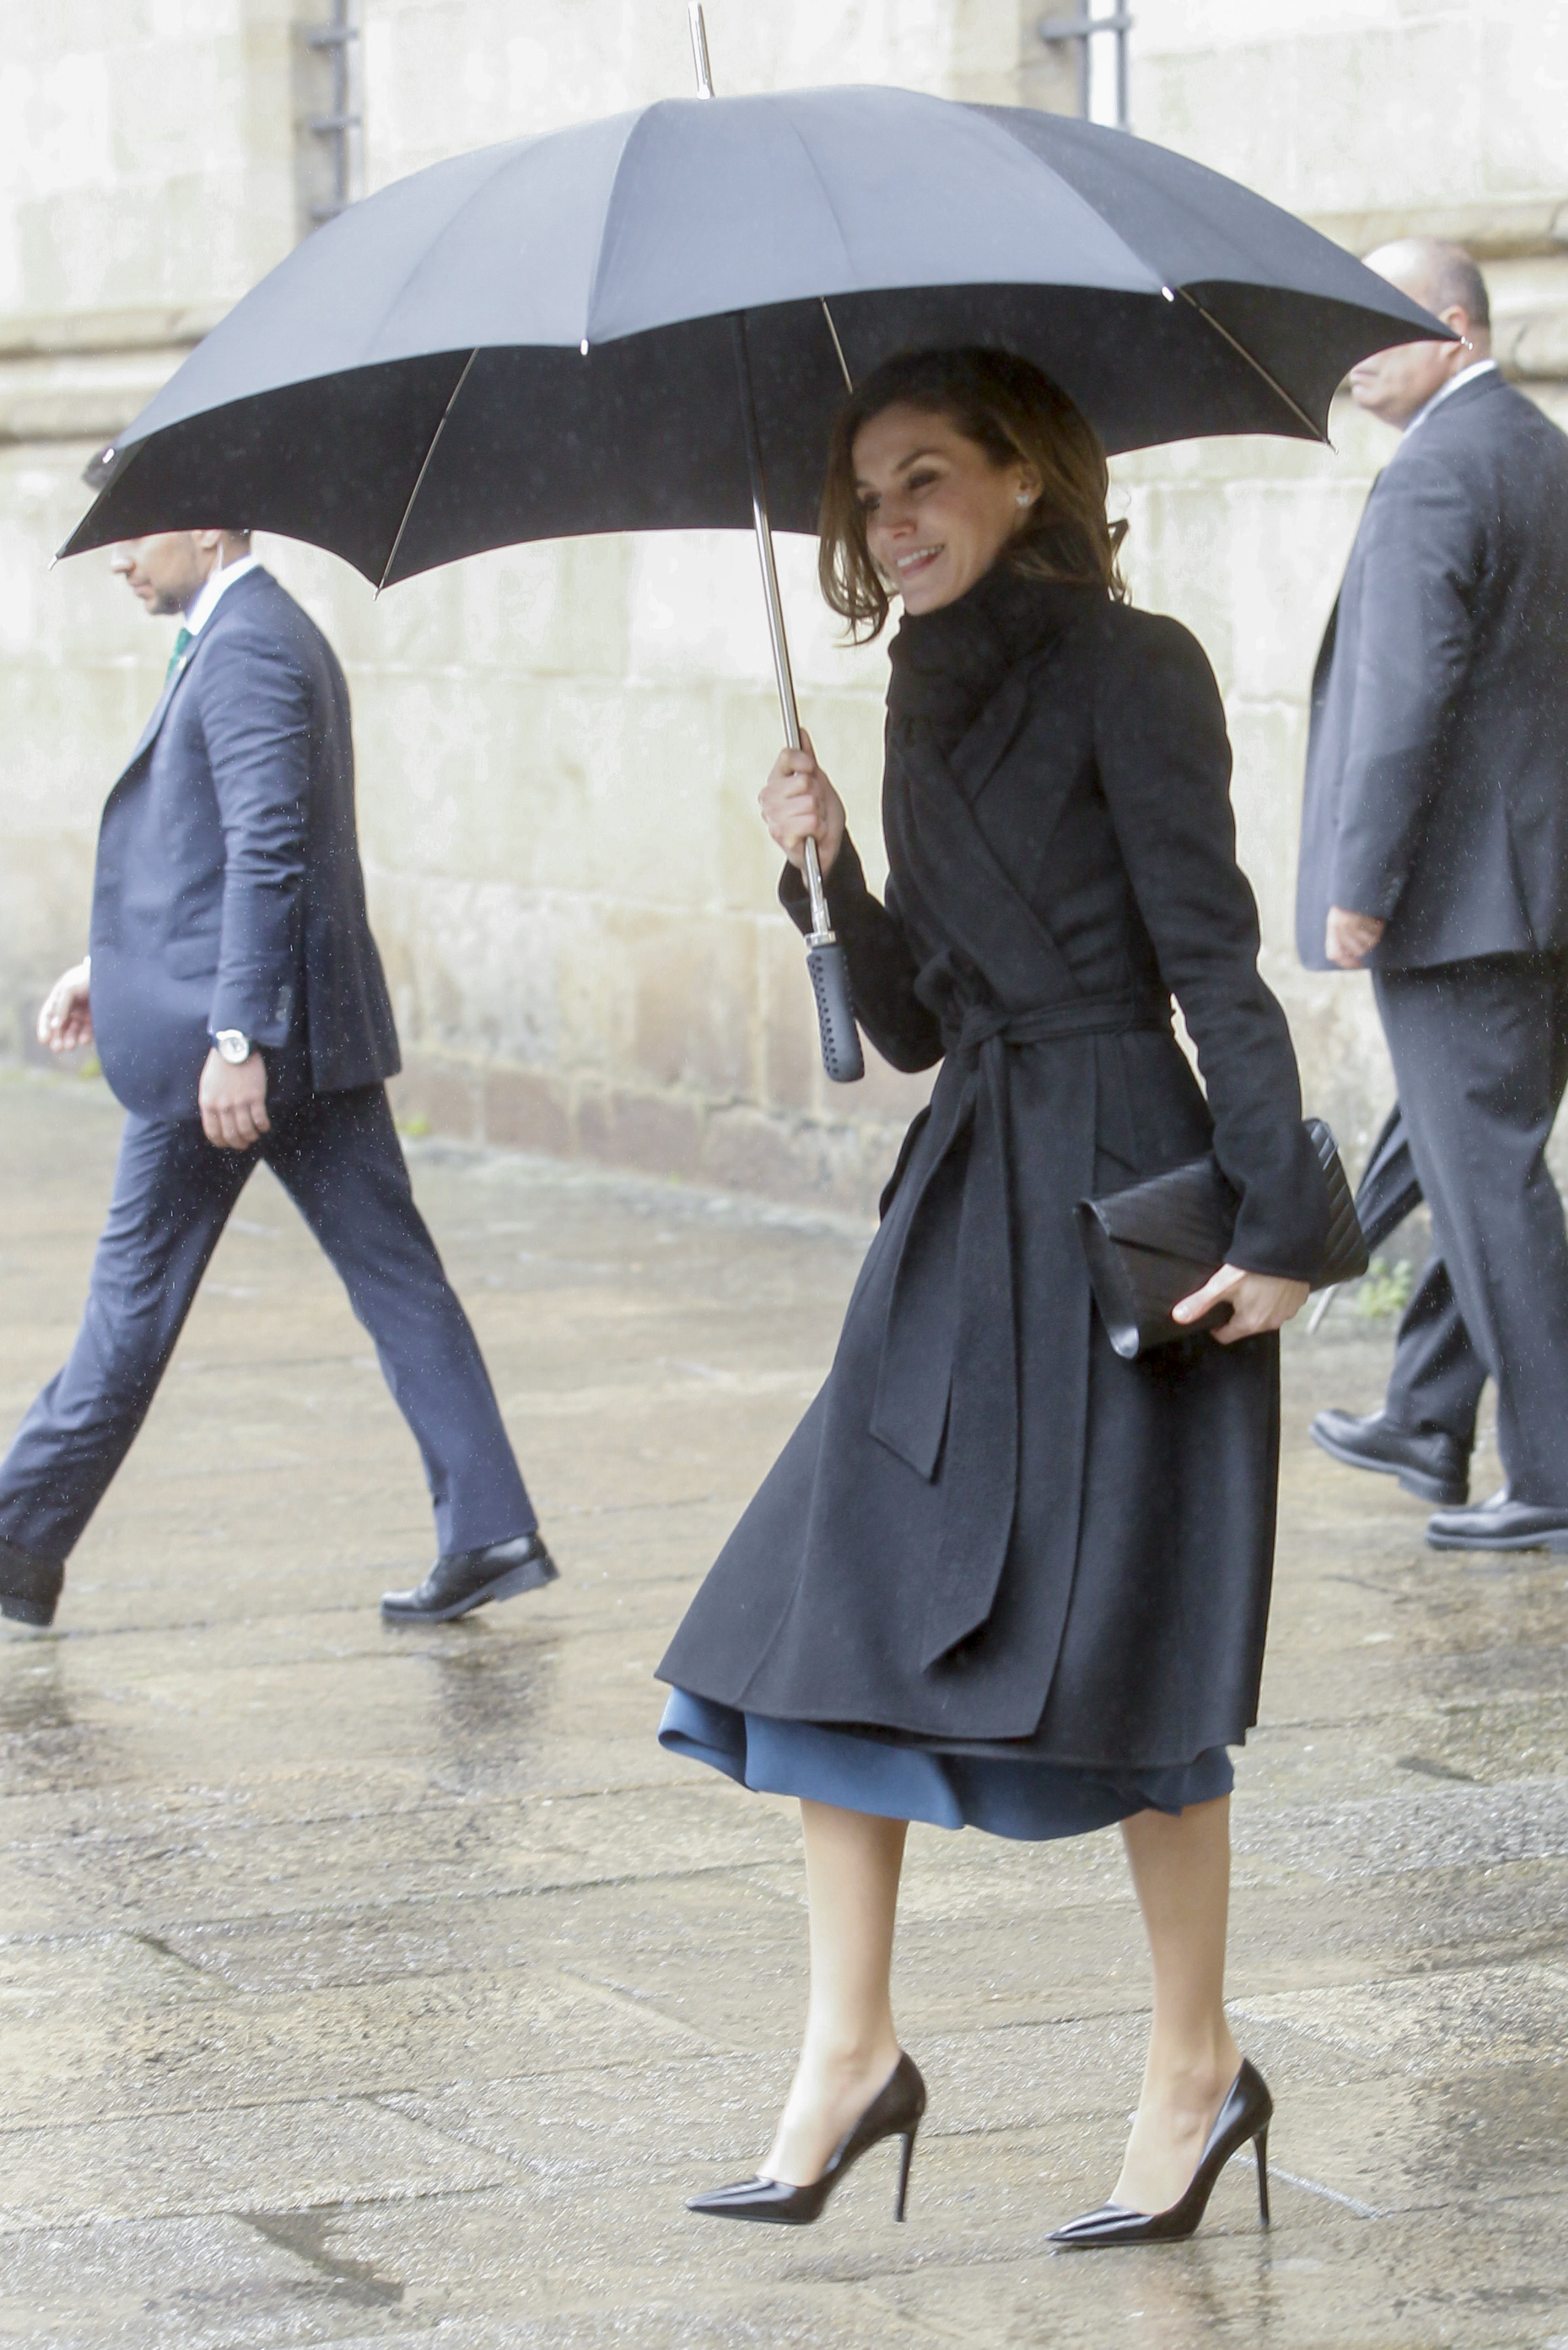 Queen Letizia attends the presentation of Digitalizadas projects at Reyes Catolicos Hotel in Santiago de Compostela, Spain <P> Pictured: Queen Letizia <B>Ref: SPL1665257  020318  </B><BR/> Picture by: Michael Murdock / Splash News<BR/> </P><P> <B>Splash News and Pictures</B><BR/> Los Angeles:310-821-2666<BR/> New York:212-619-2666<BR/> London:870-934-2666<BR/> <span id=